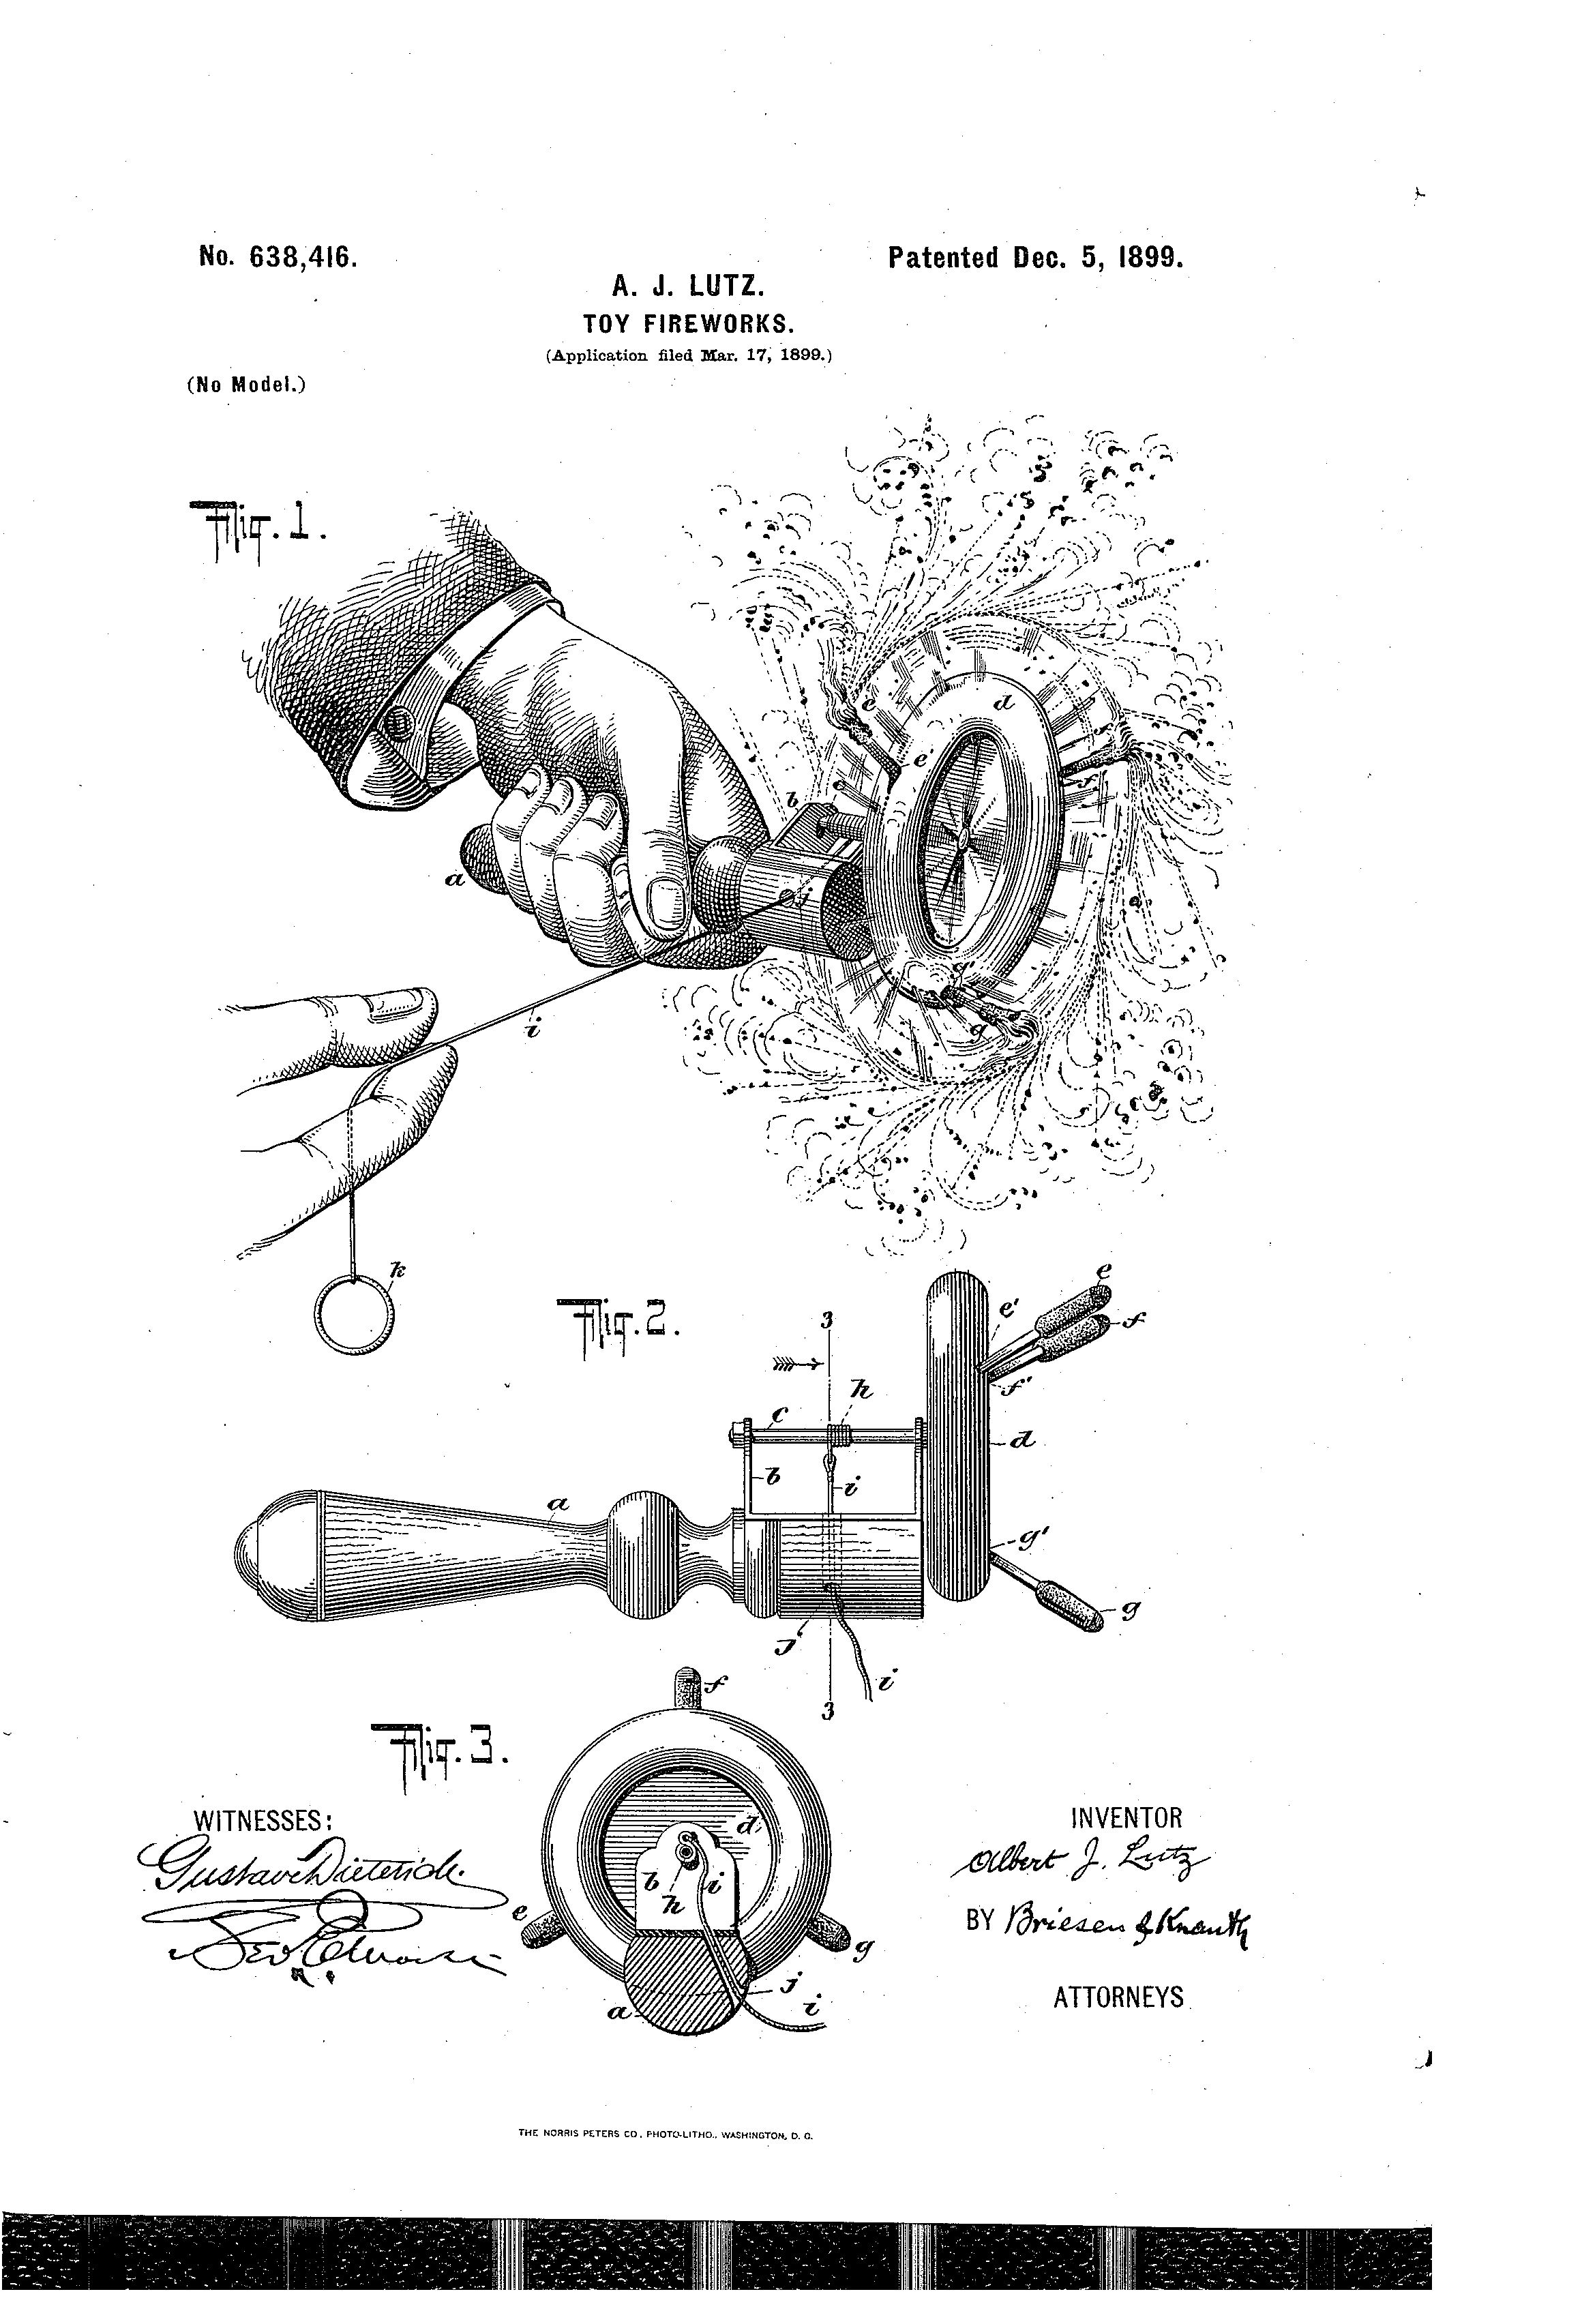 Independence Day Innovations - Toy Fireworks Patent